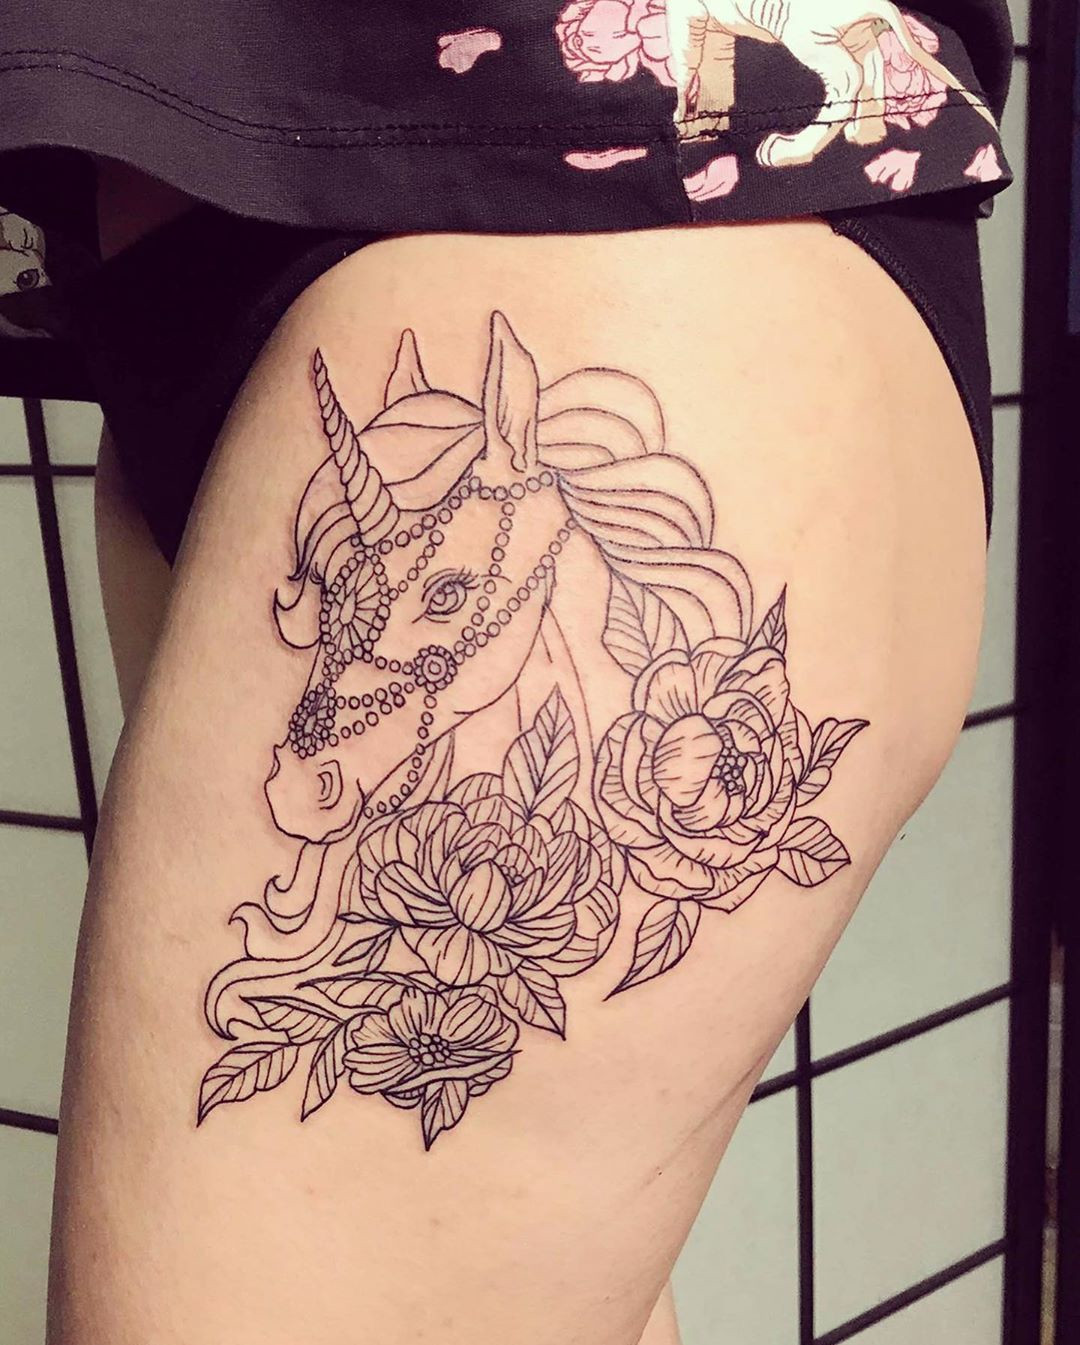 52 Intriguing Unicorn Tattoos Designs,Unicorn tattoo designs are whimsical and happy. The evoke a sense of euphoria that's enchanting and enticing to both the artist, the canvas and the onlooker.